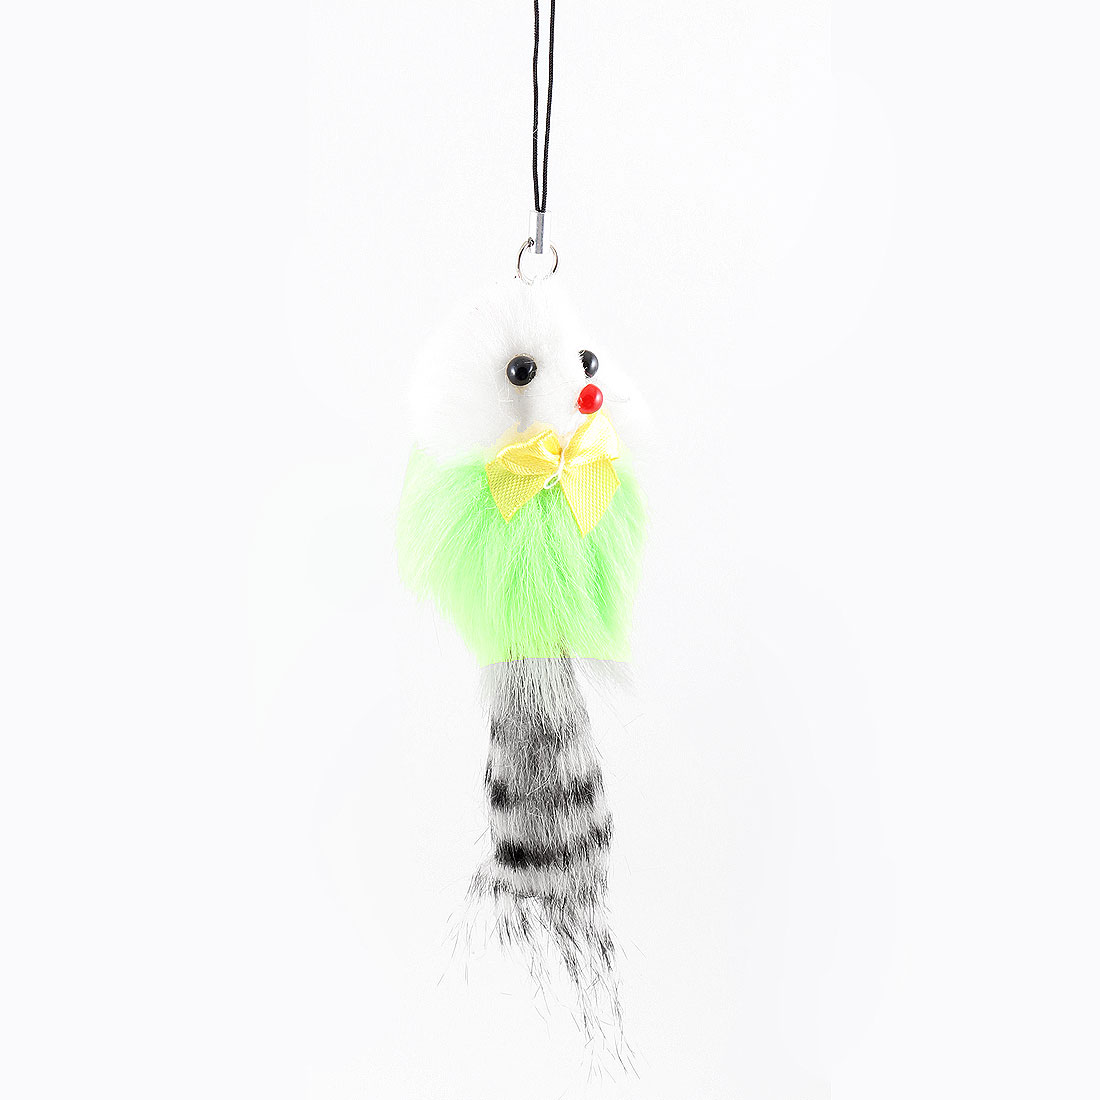 Light Green Gray Feather Mouse Charm Strap Pendant for Phone Mp3 Mp4